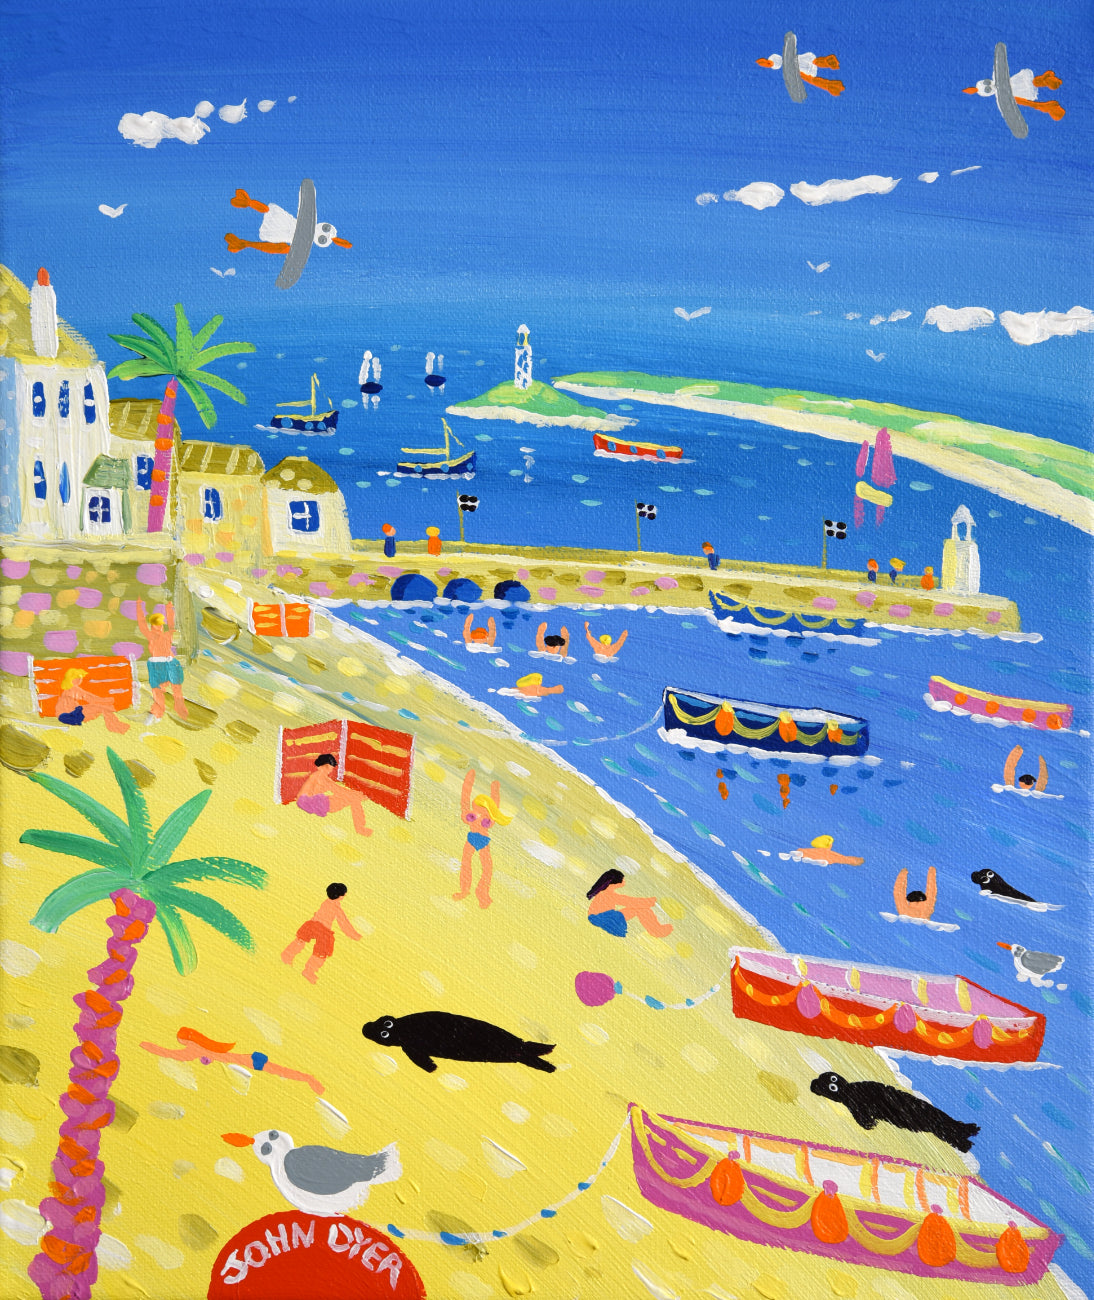 Sea, sun and sand, all captured in this delightful John Dyer painting of St Ives in Cornwall. The artist has combined the view of the harbour with the distant view of Godrevy Lighthouse and Gwithian Sands. Boats are pulled up onto the yellow sand and sleepy seals bask in the warm summer sunshine. Beautiful.